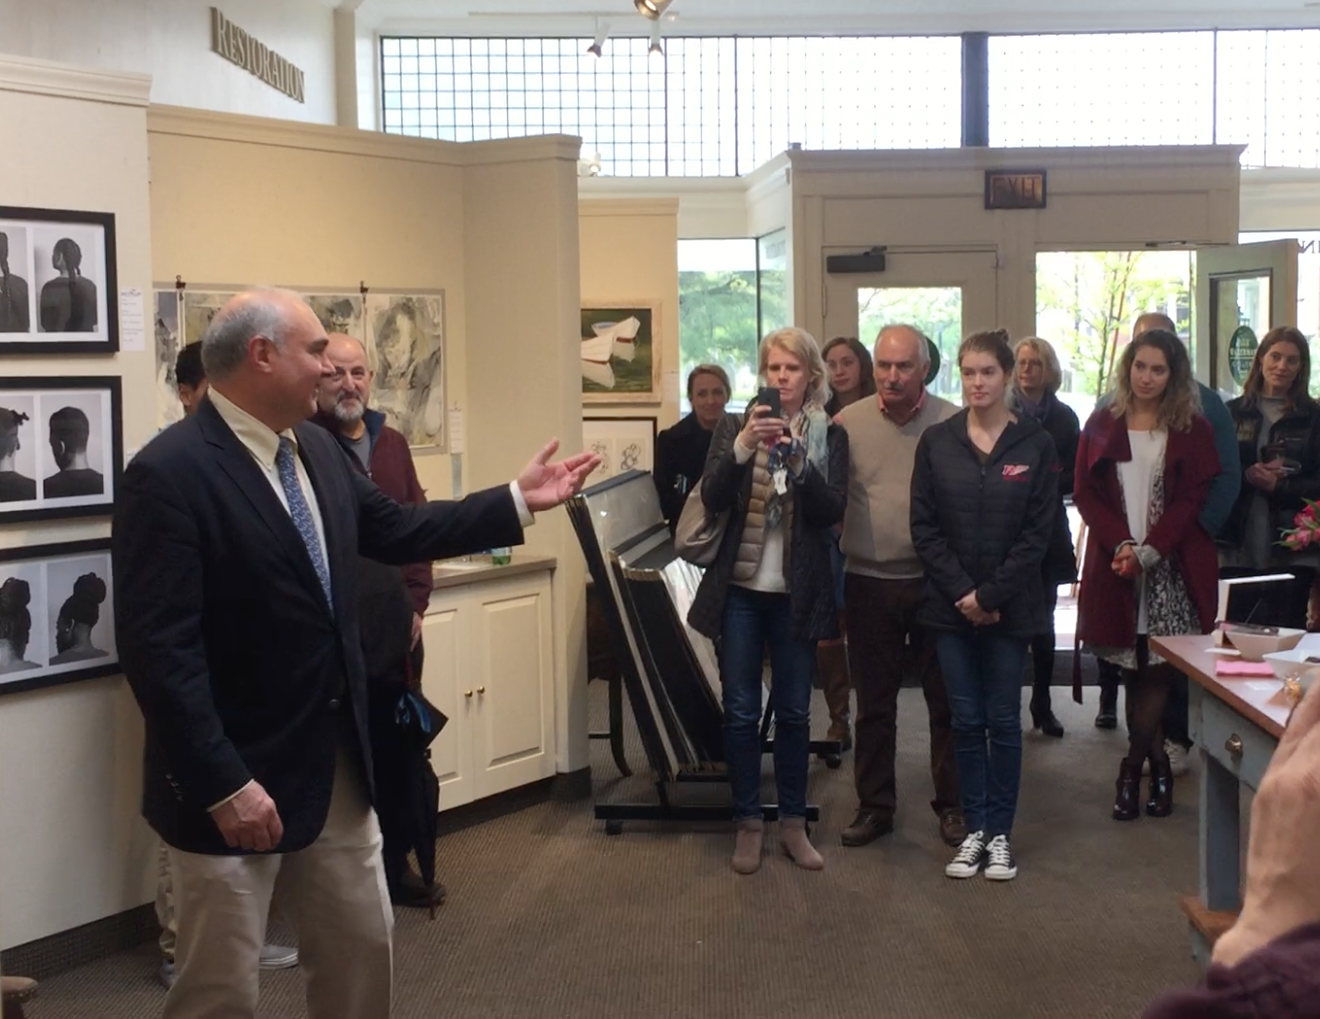 Bob Anthony, president of Adolescent Wellness, Inc. speaks at the Next Up! 2017 Reception at Page Waterman Fine Framing, Wellesley